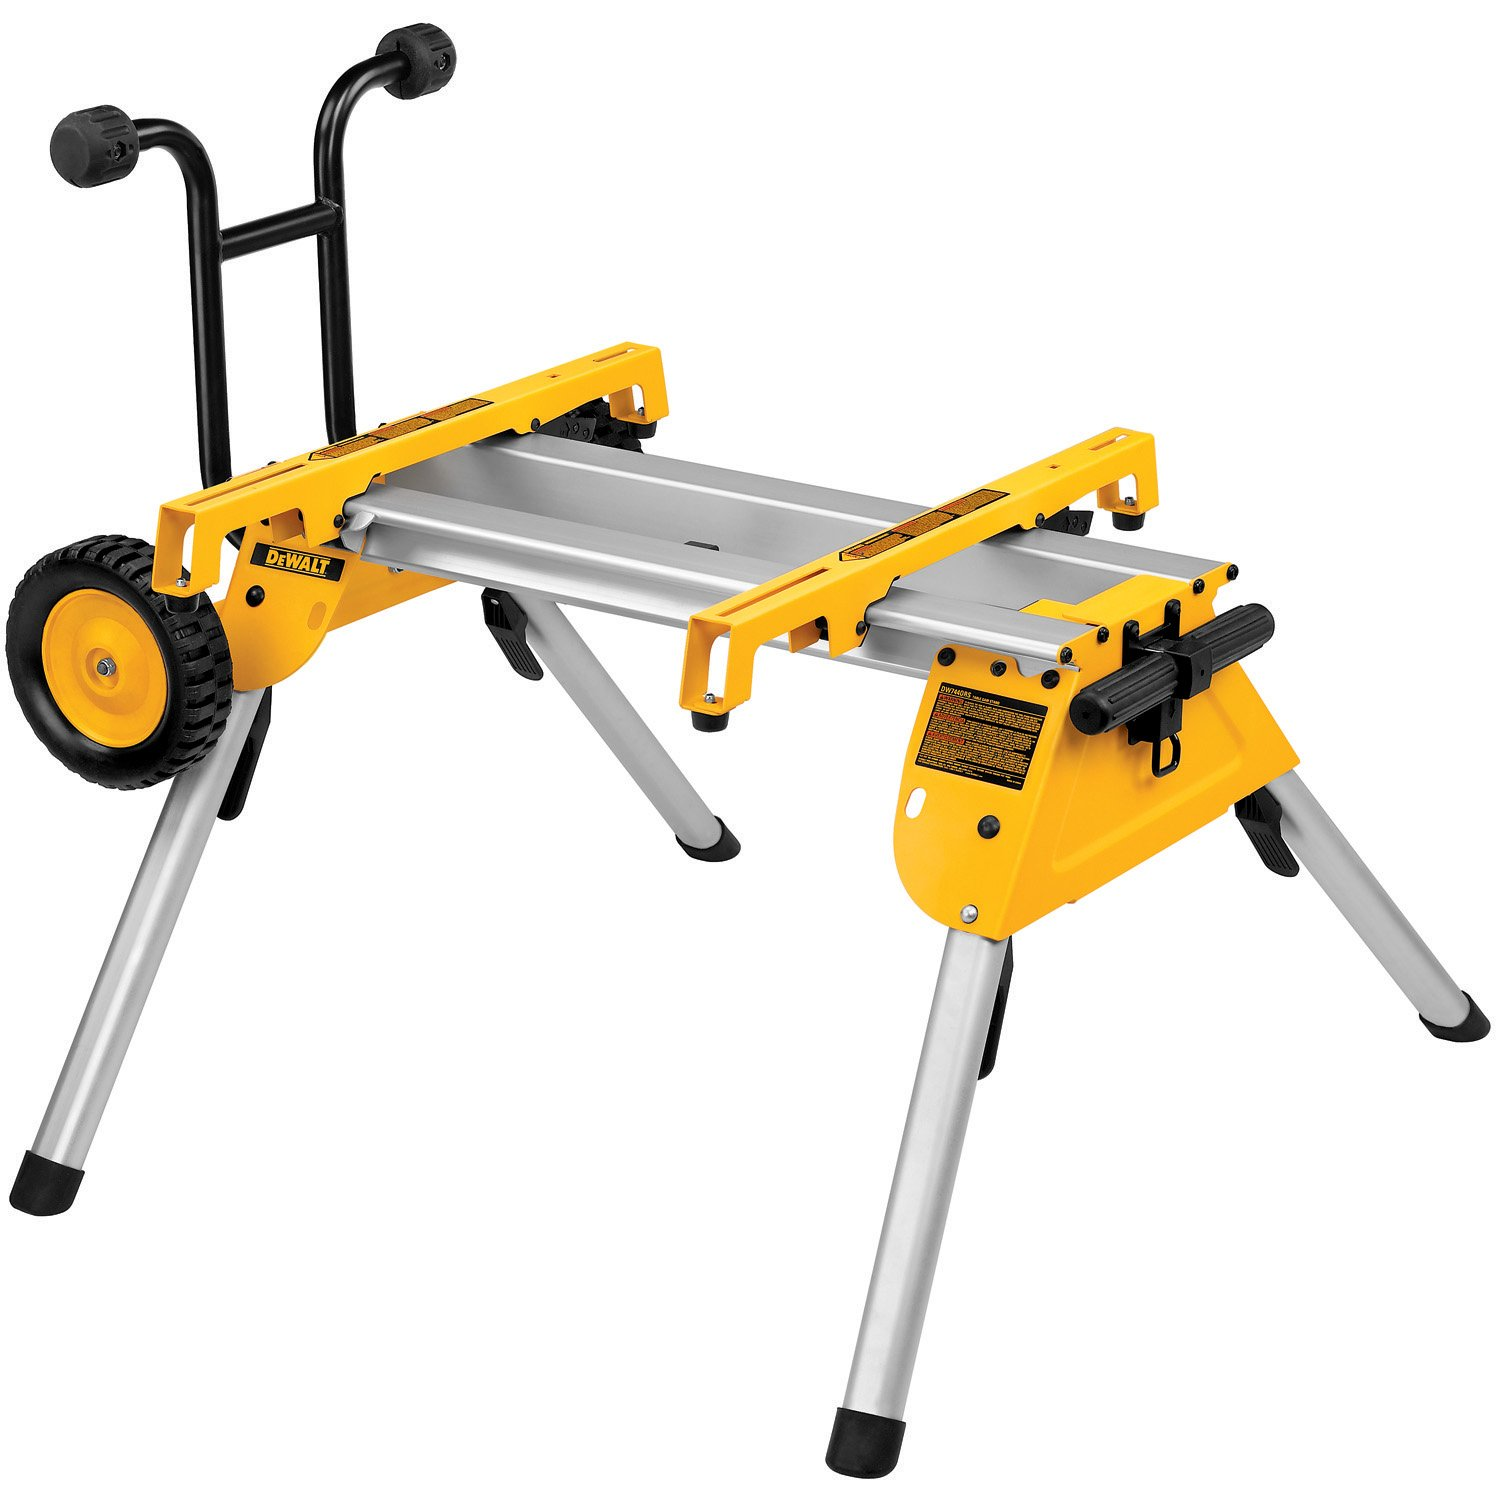 tool tablesaw nut compact the dewalt table saw